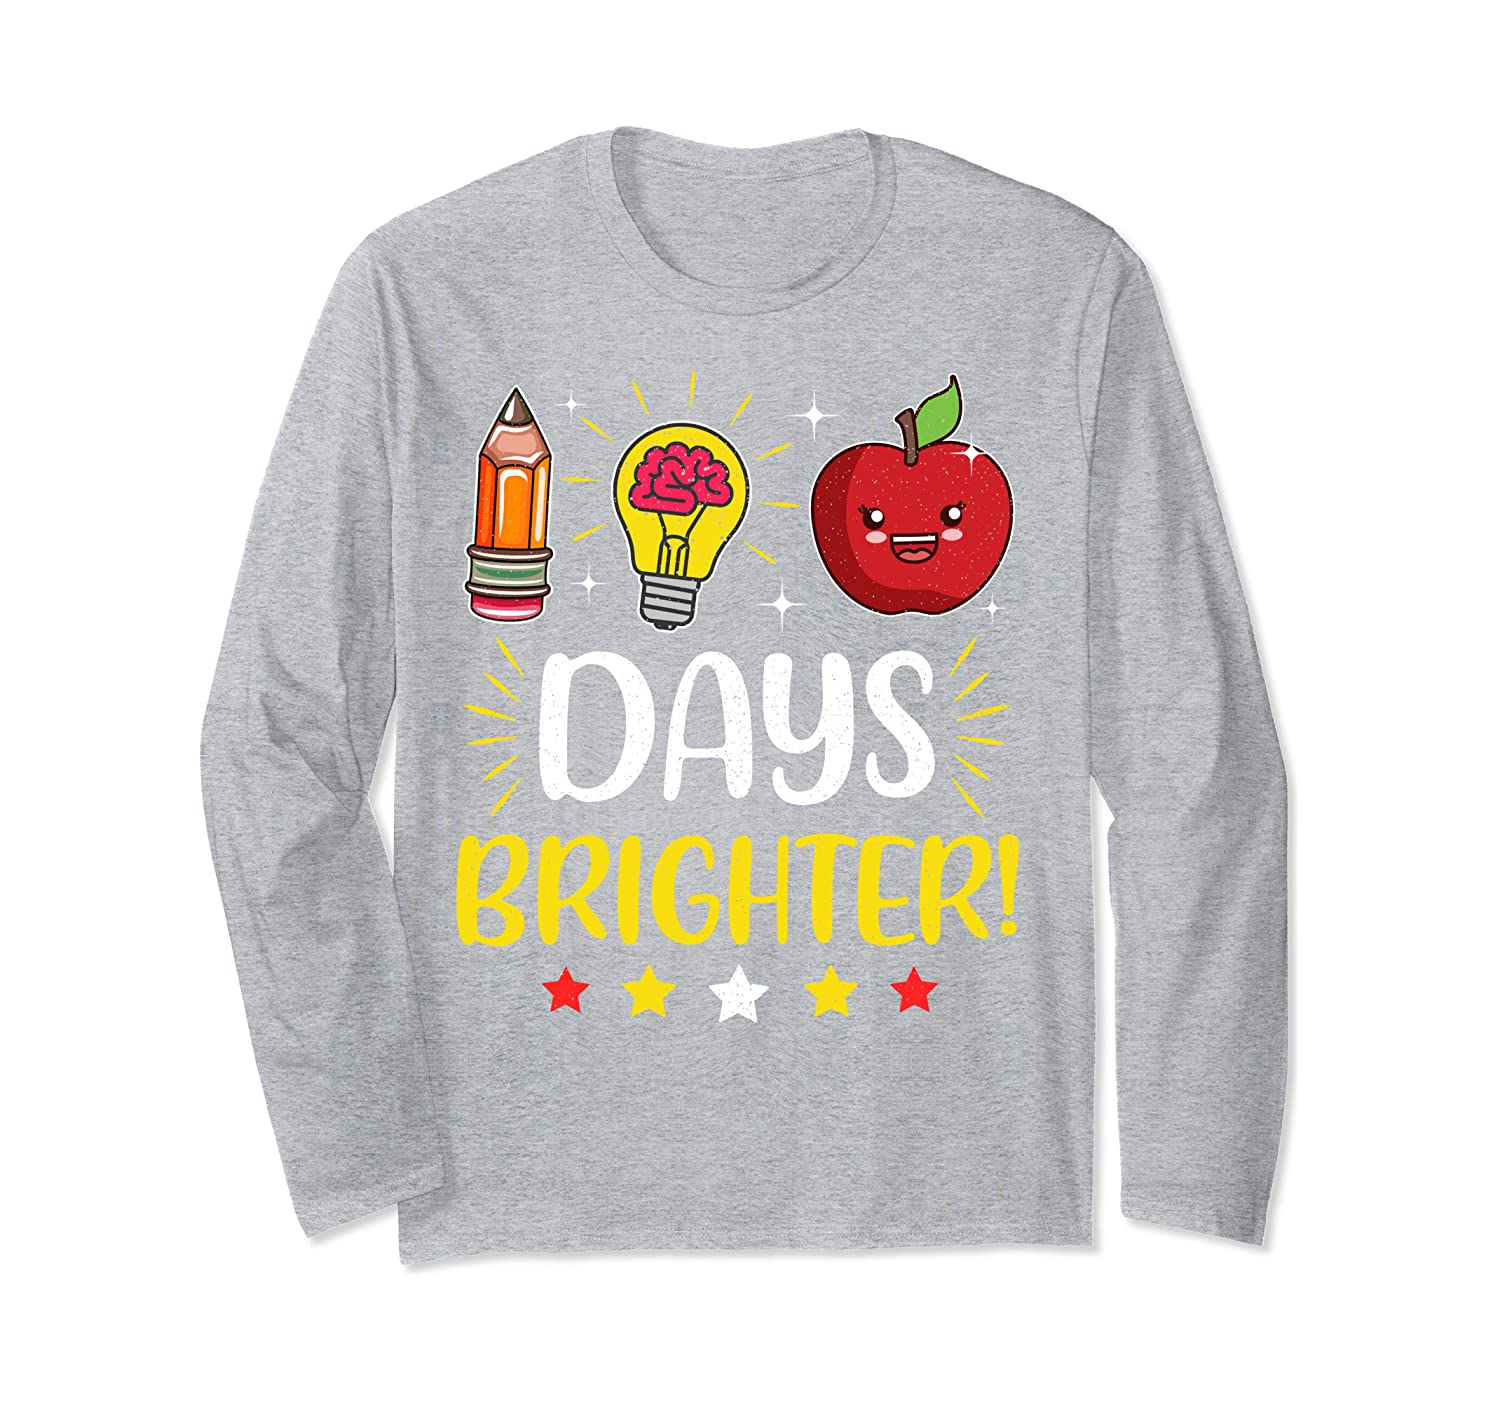 100 Days Brighter Tee Happy 100th Day of School Gifts Long Sleeve T-Shirt-Awarplus